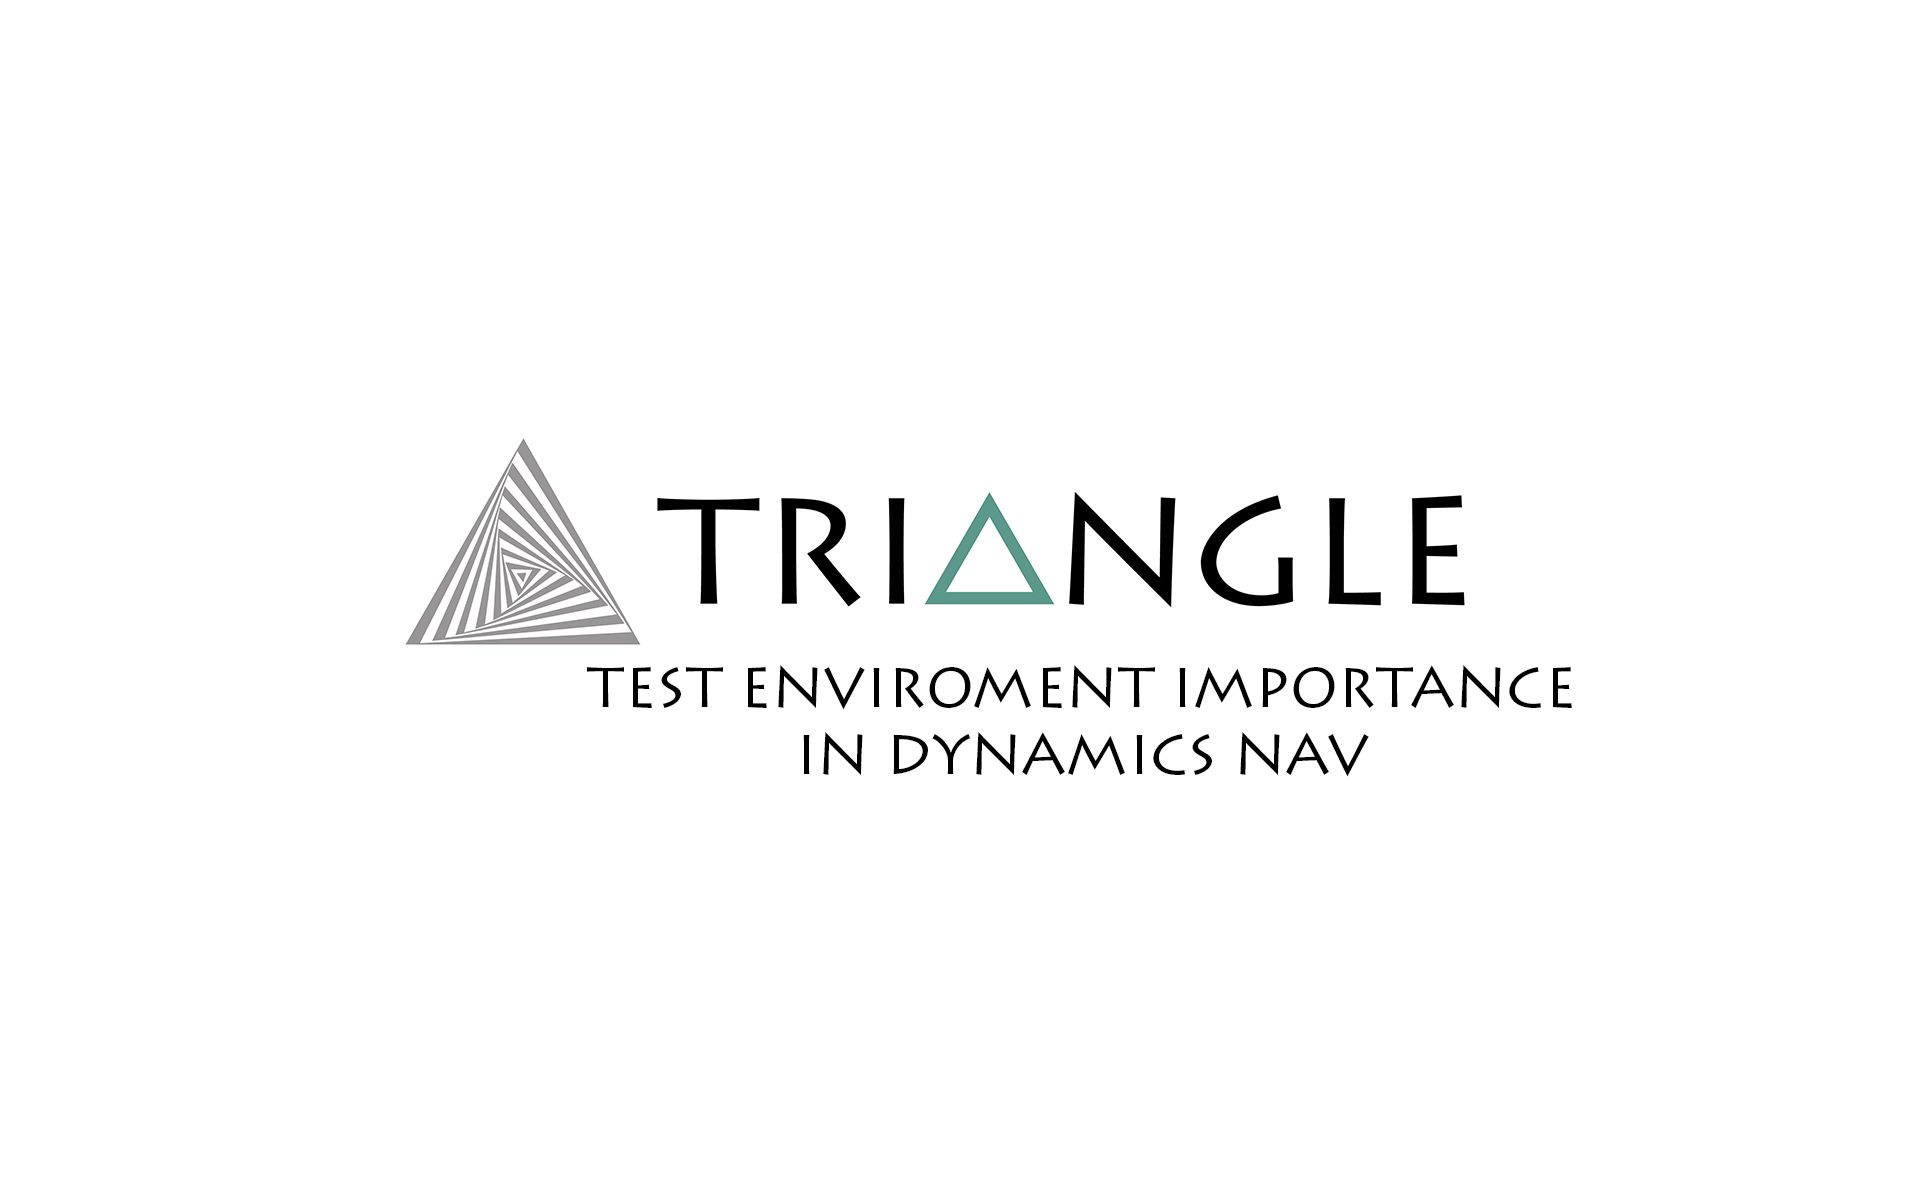 Test Enviroment Importance Dynamics NAV